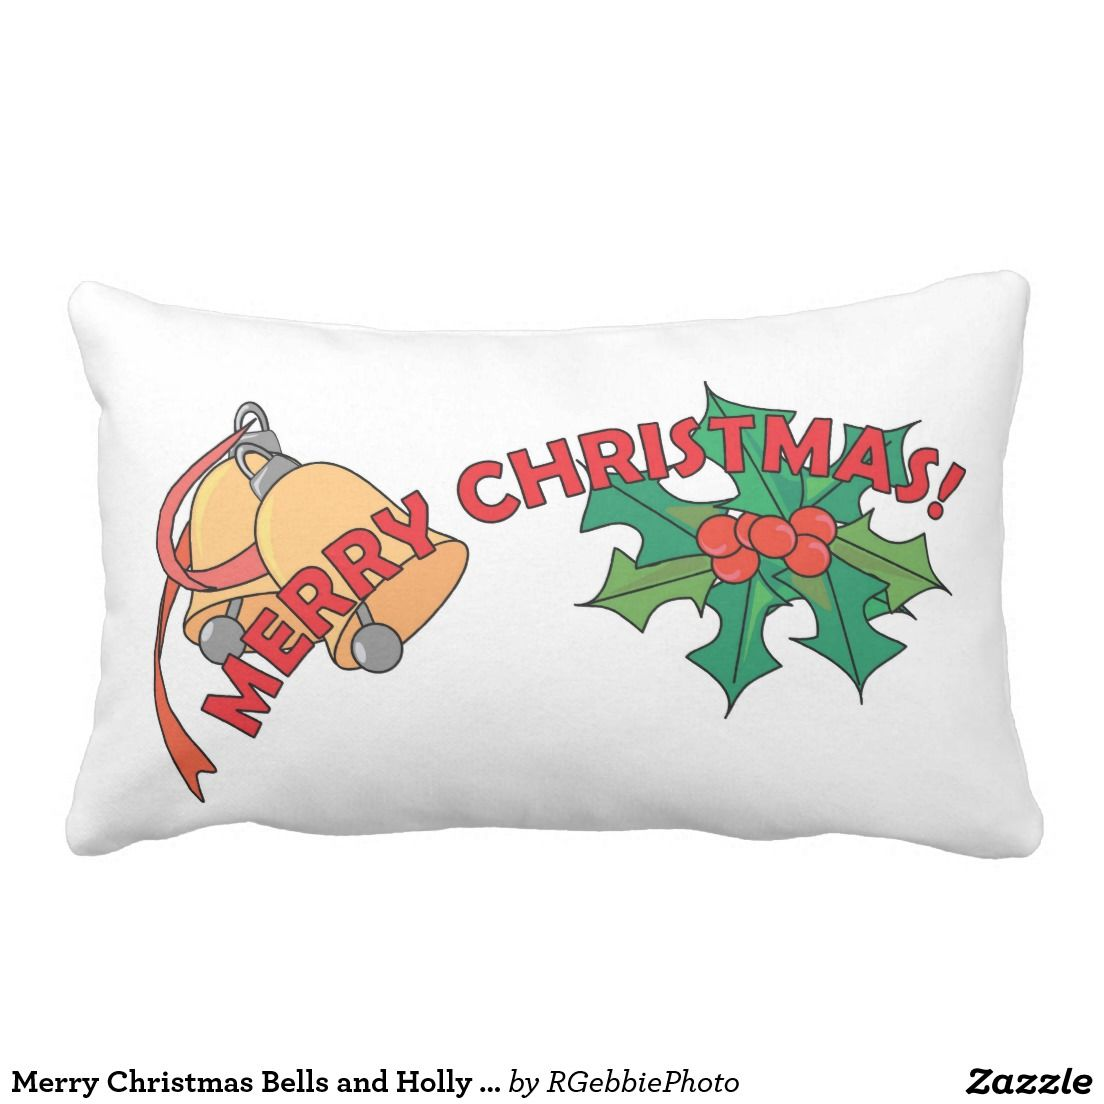 Merry Christmas Bells and Holly Postcard Throw Pillow $51.95 Designed like a soft postcard, full text fields on back. Gold bells and green holly leaves with berries. Merry Christmas in red overlaying it. Happy Holidays Christmas design! Dash off a note to a loved one! See more of our Christmas designs in our store.